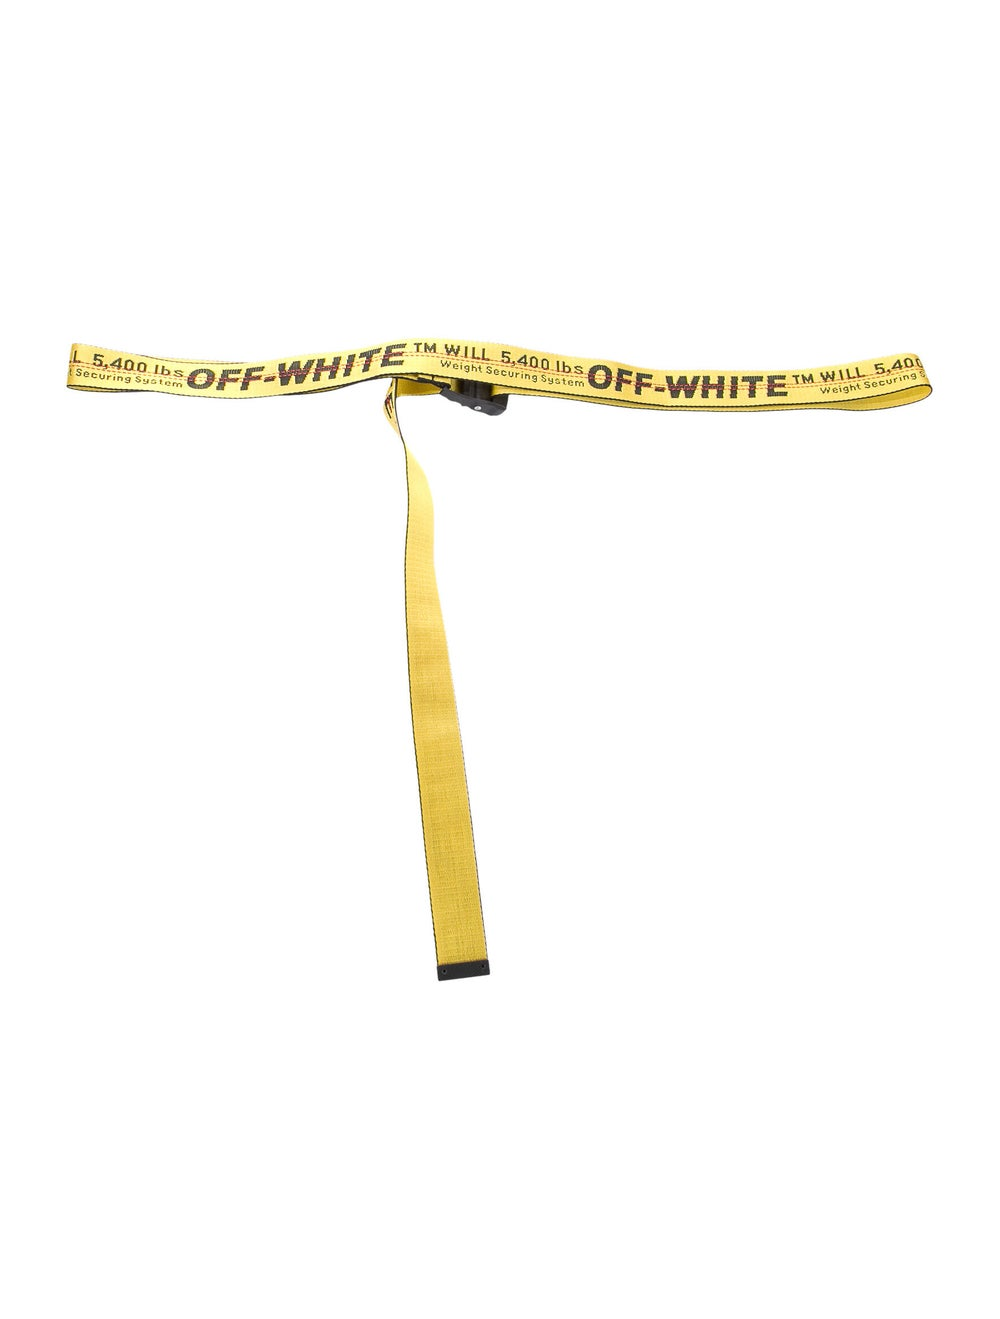 Off-White 2018 Industrial Logo Belt Yellow - image 3